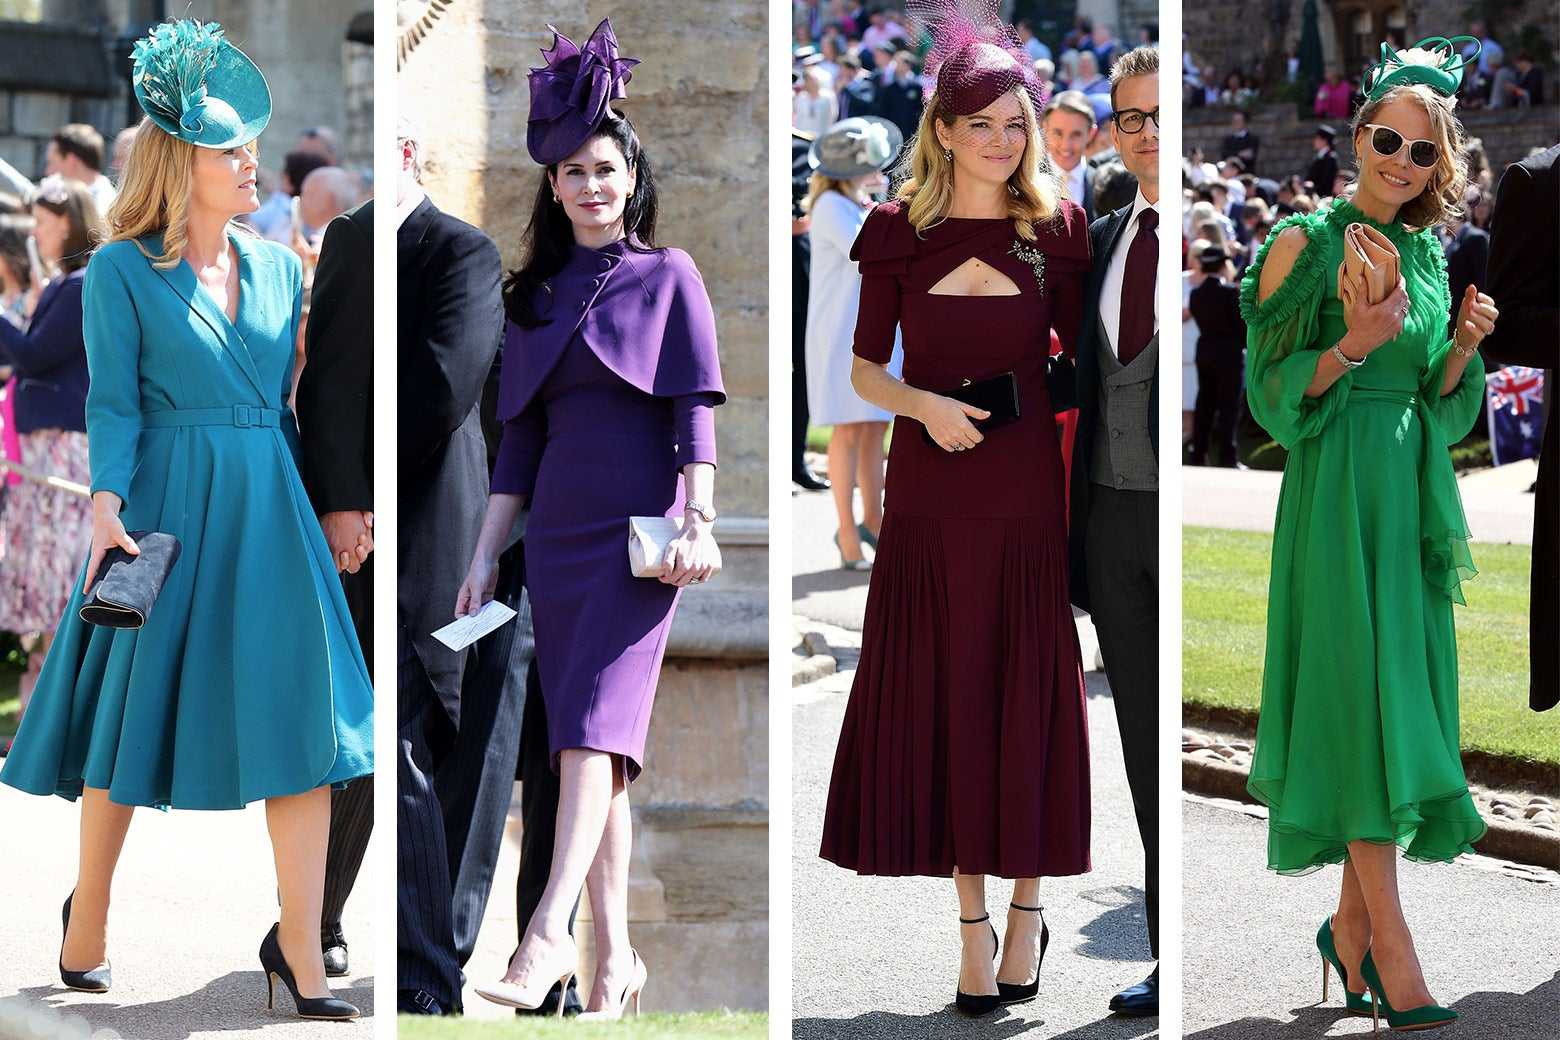 Autumn Phillips in blue, Karen Spencer in royal purple, Jacinda Barrett in Maroon, and Caroline Greenwood in green.